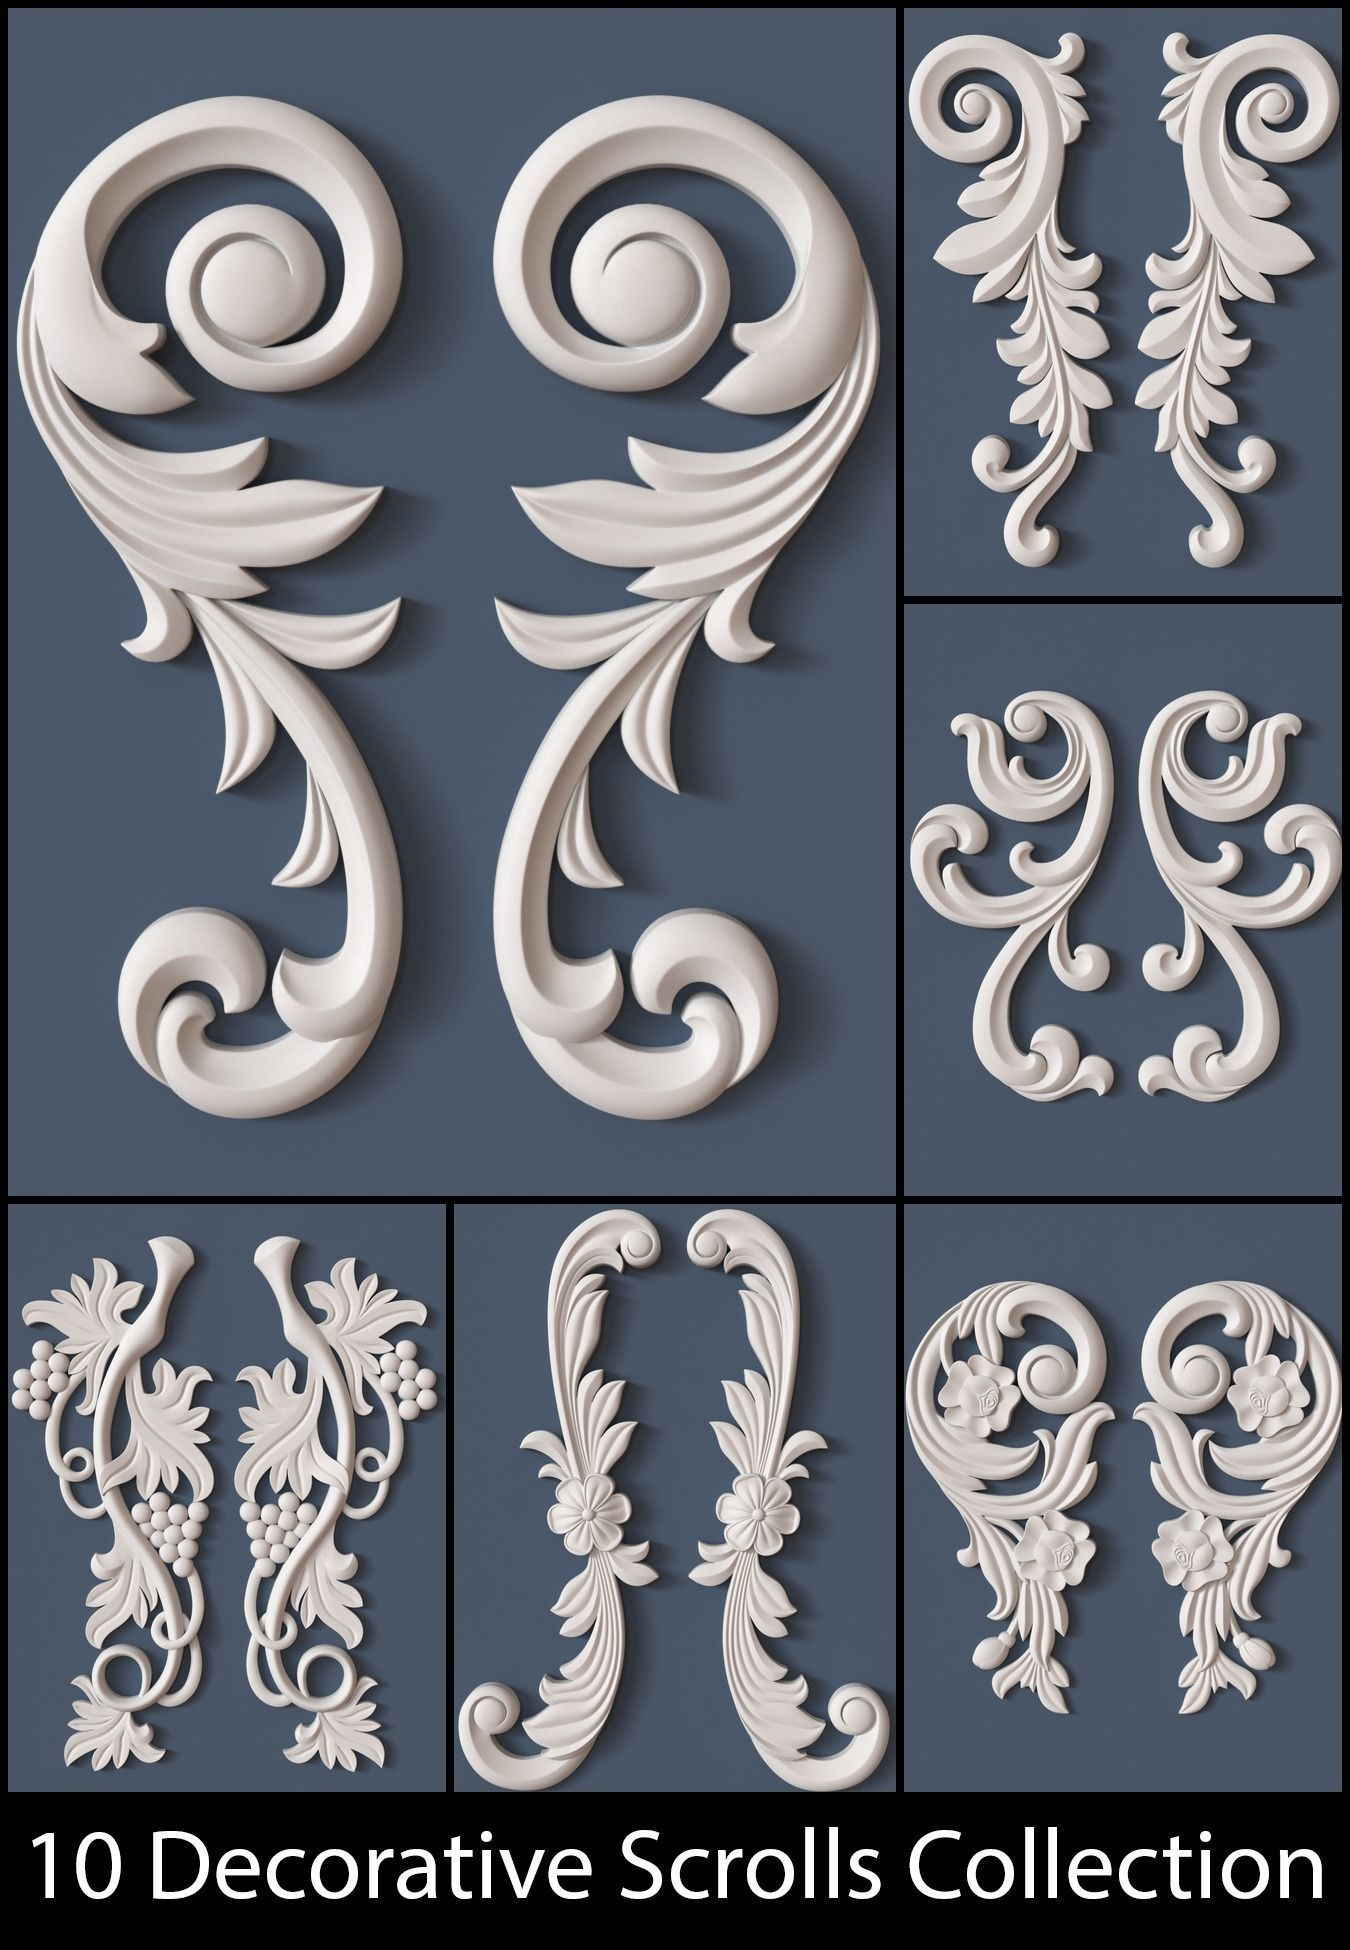 10 decorative scrolls collection 3d model max obj fbx ma for 3d decoration models